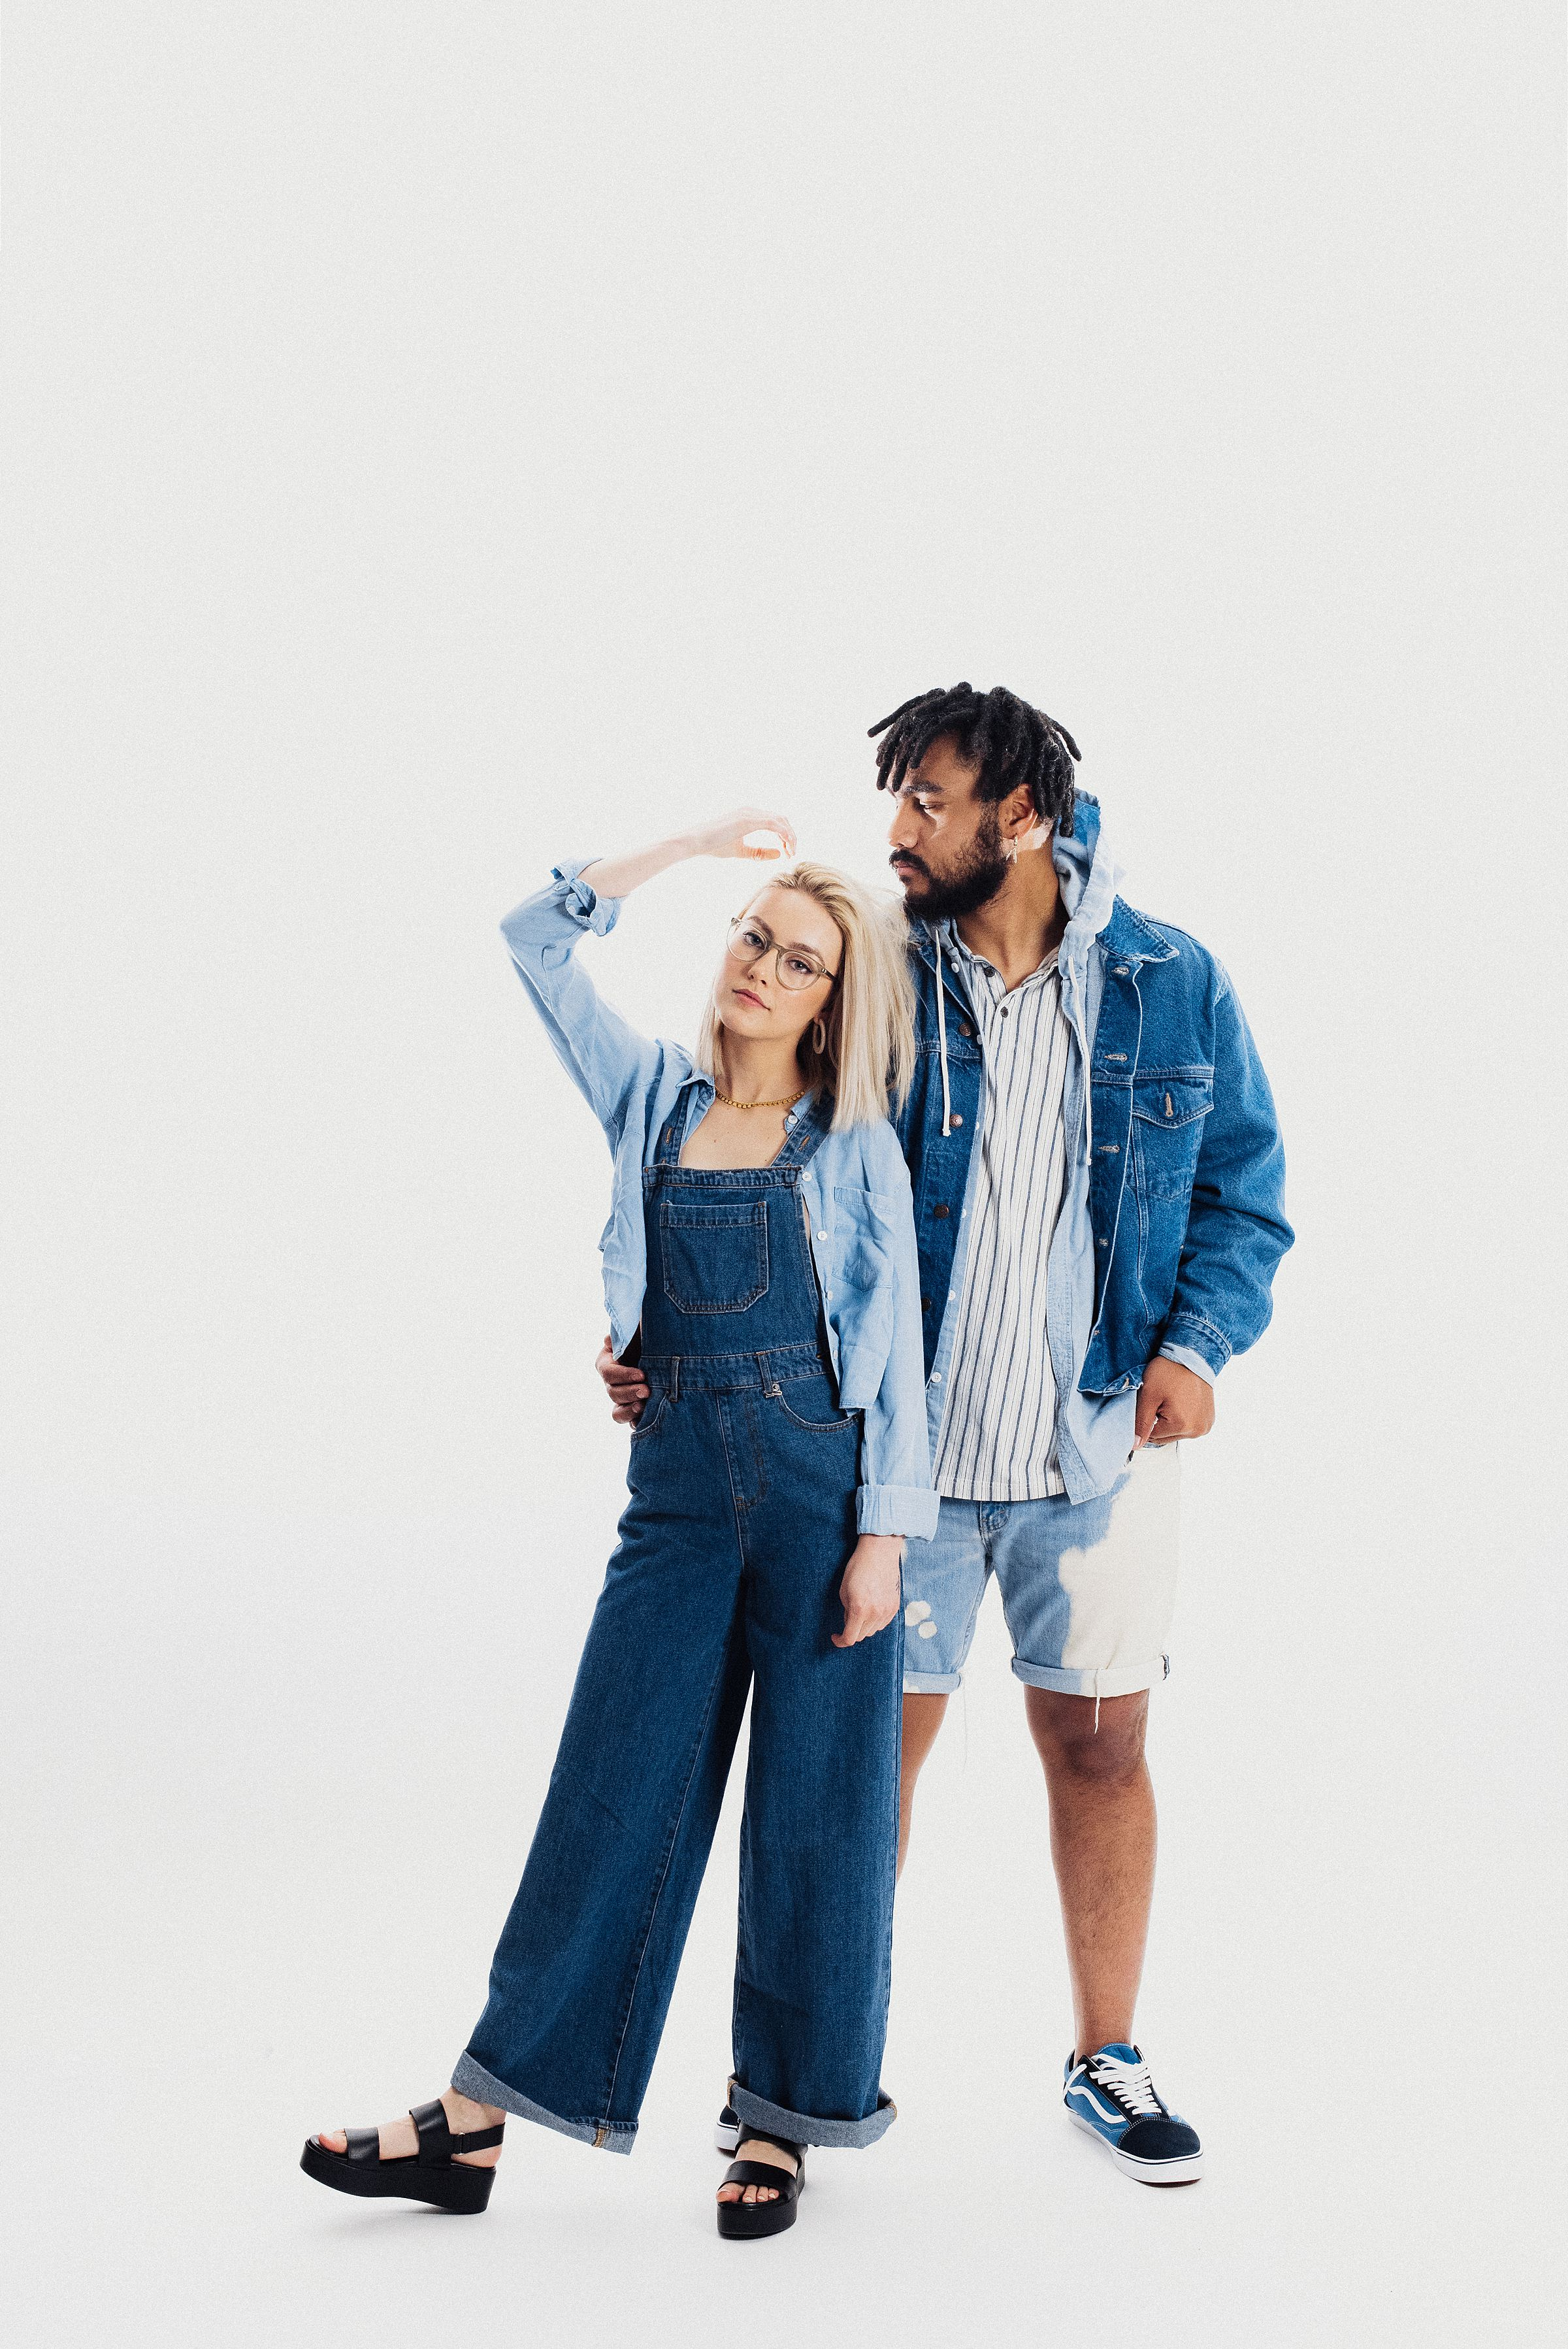 all-jean-couples-session_5416.jpg